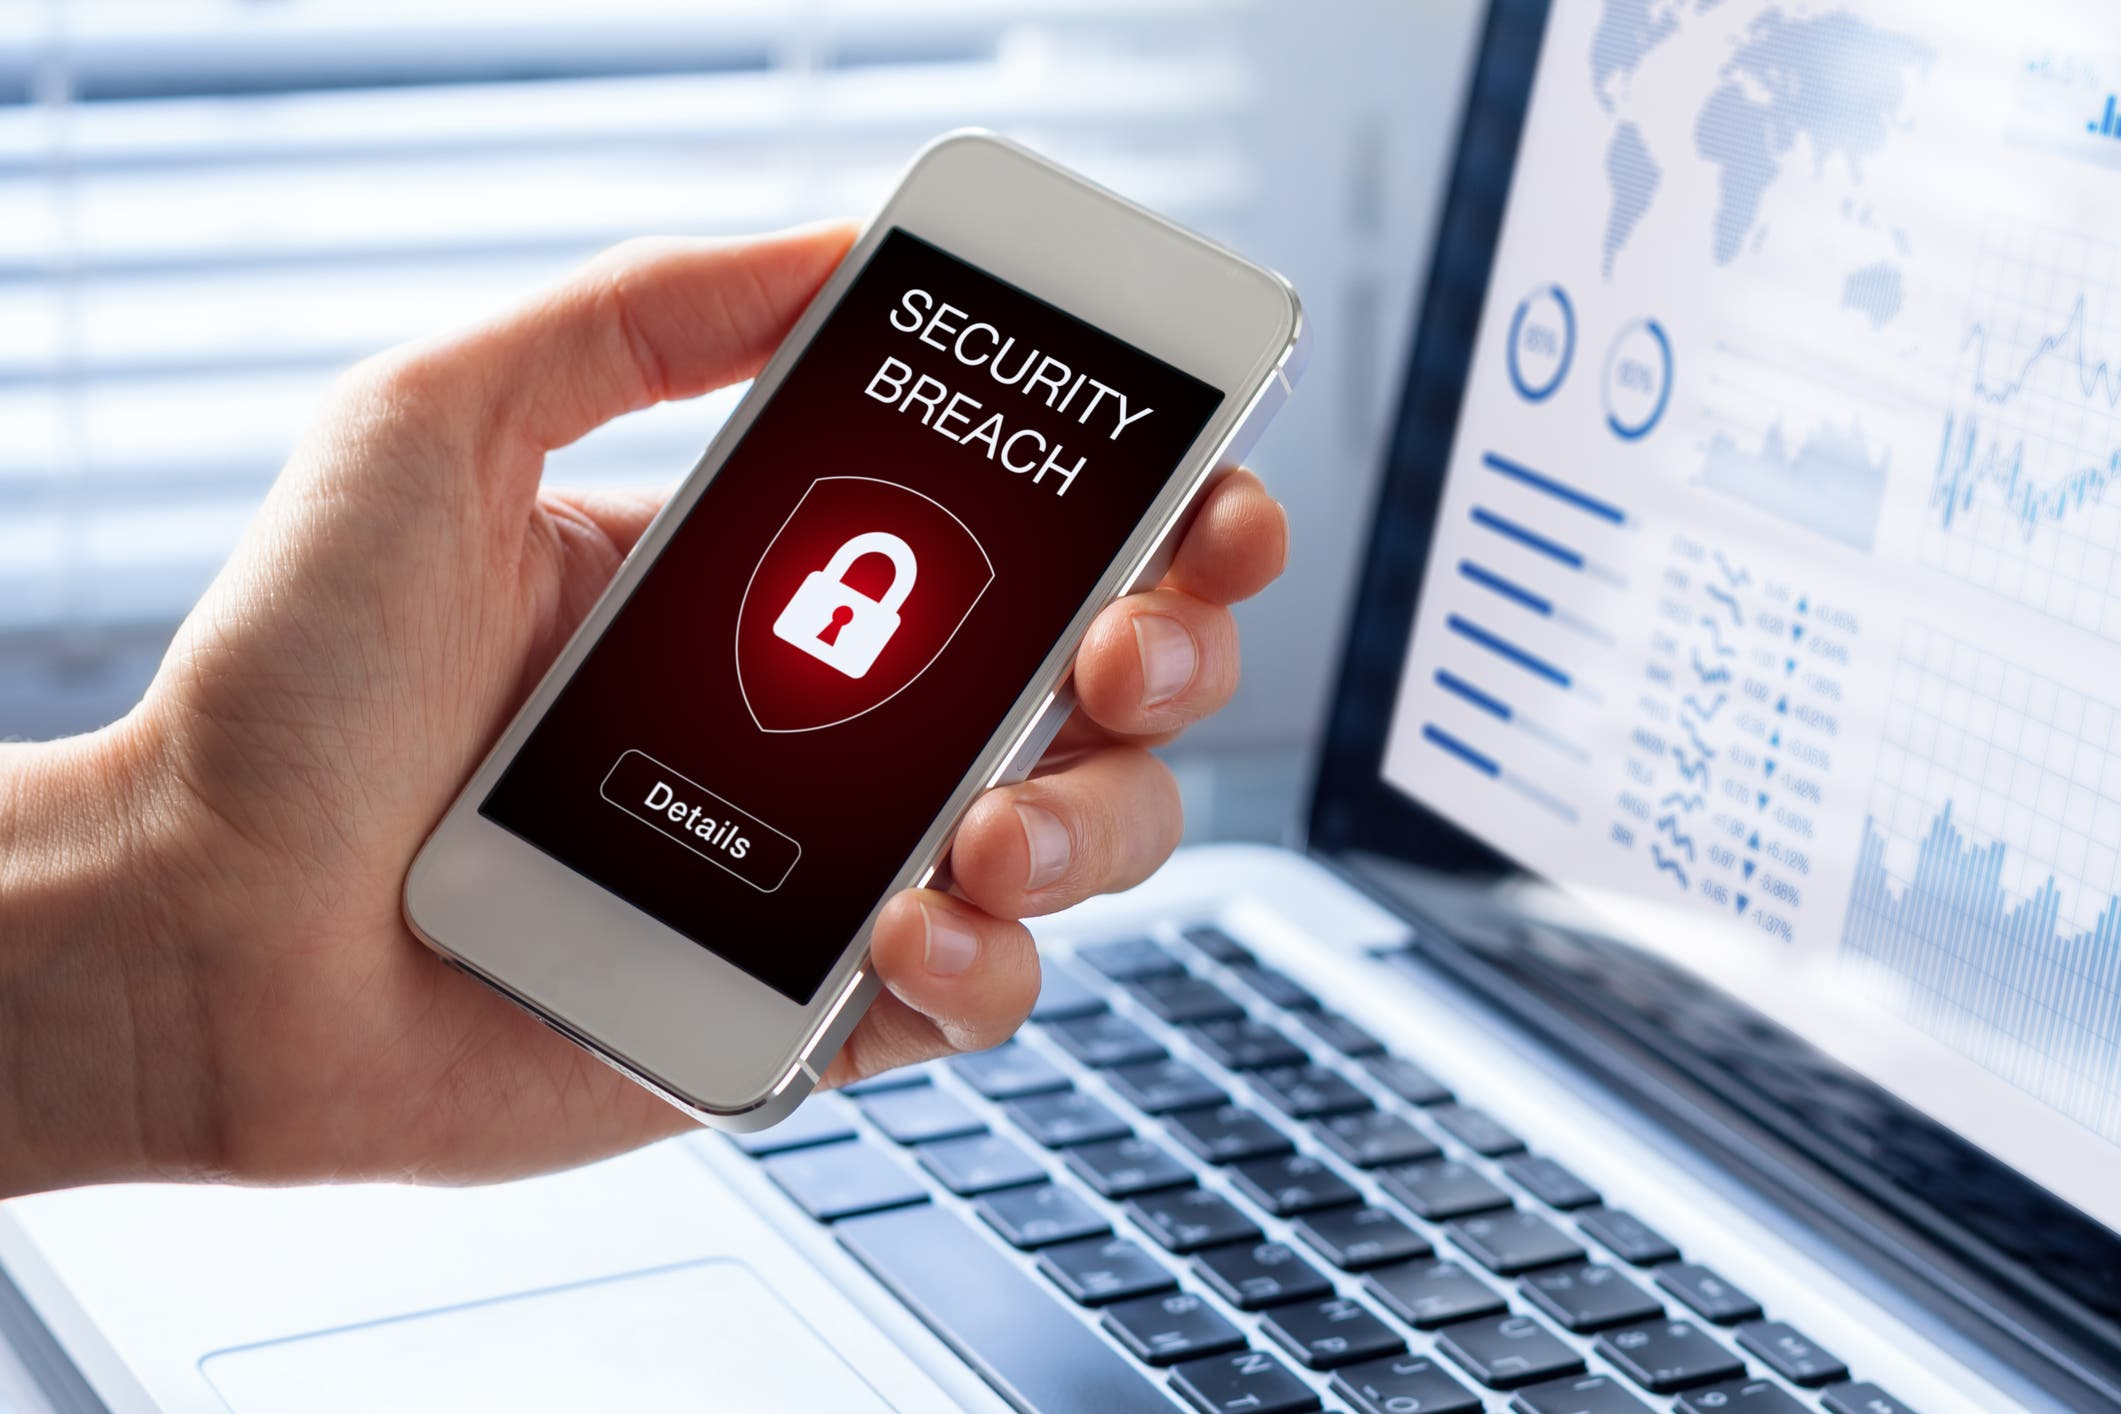 Security breach, smartphone screen, infected by internet virus, cyberattack hacking - Stock image